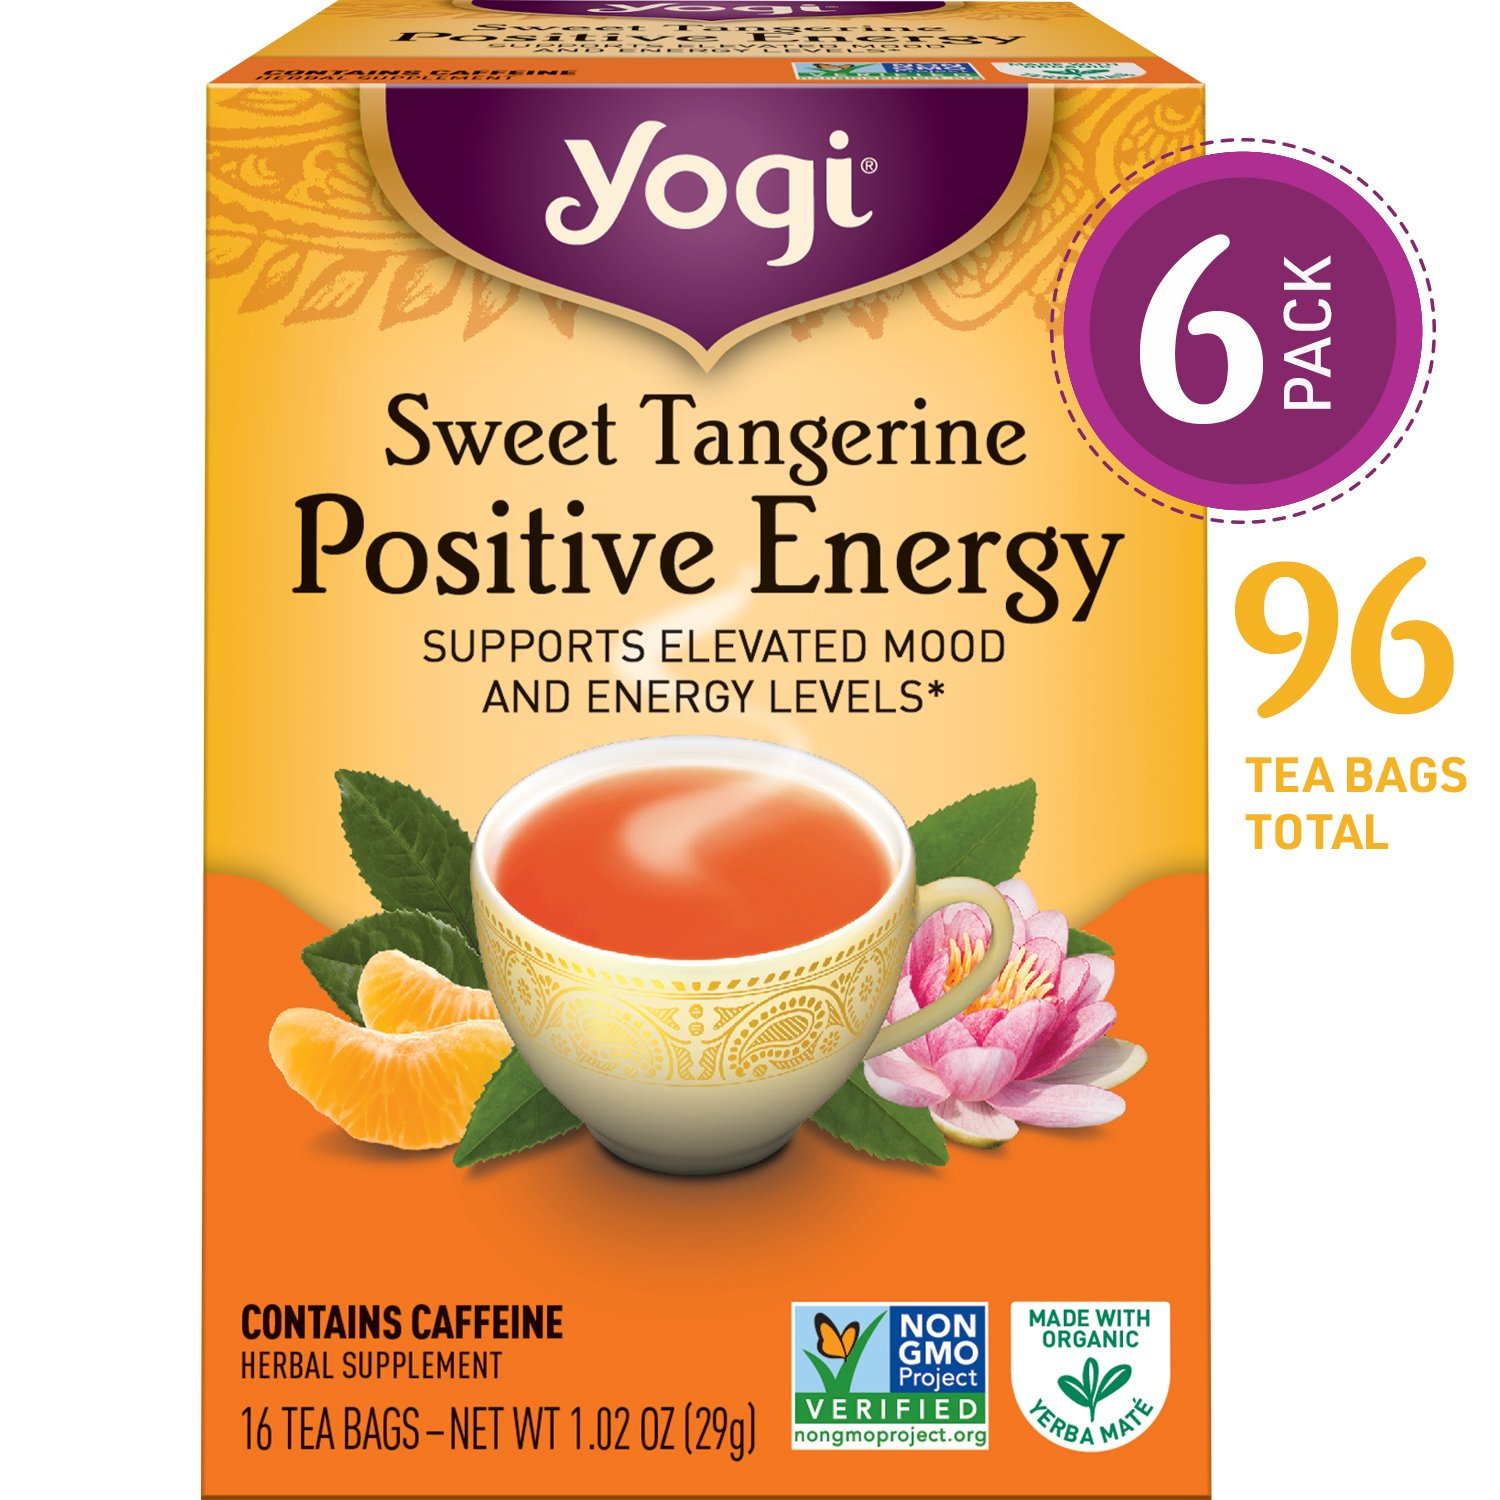 Yogi Teas Sweet Tangerine Positive Energy, 16 Count (Pack of 6), Packaging May Vary